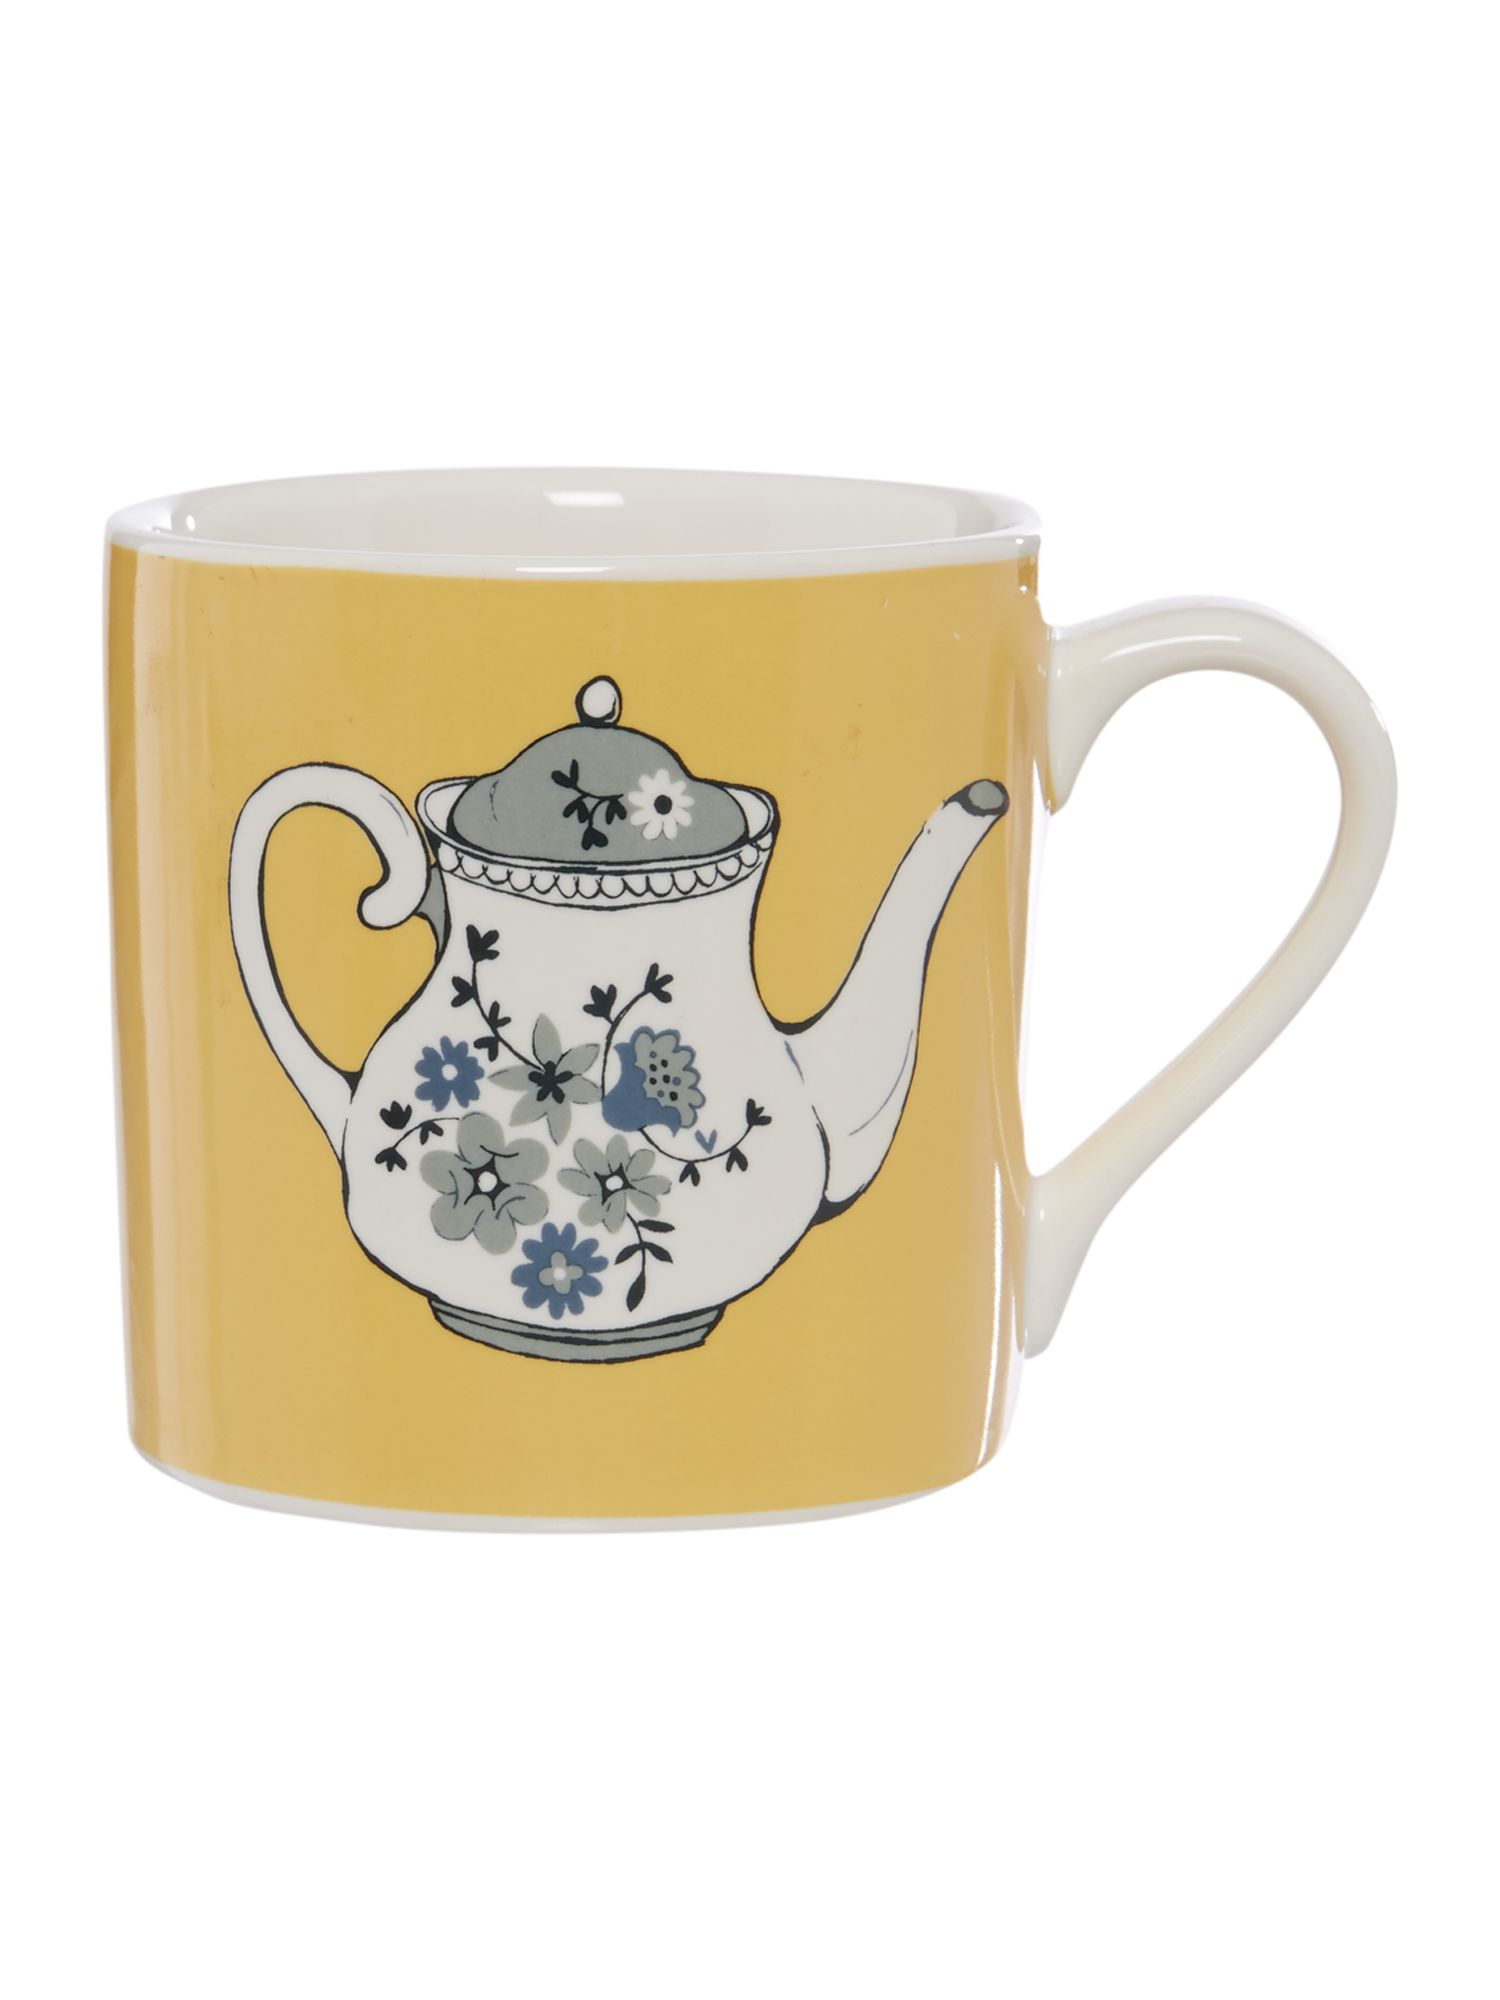 Dickins & Jones Stoneware Mug Range